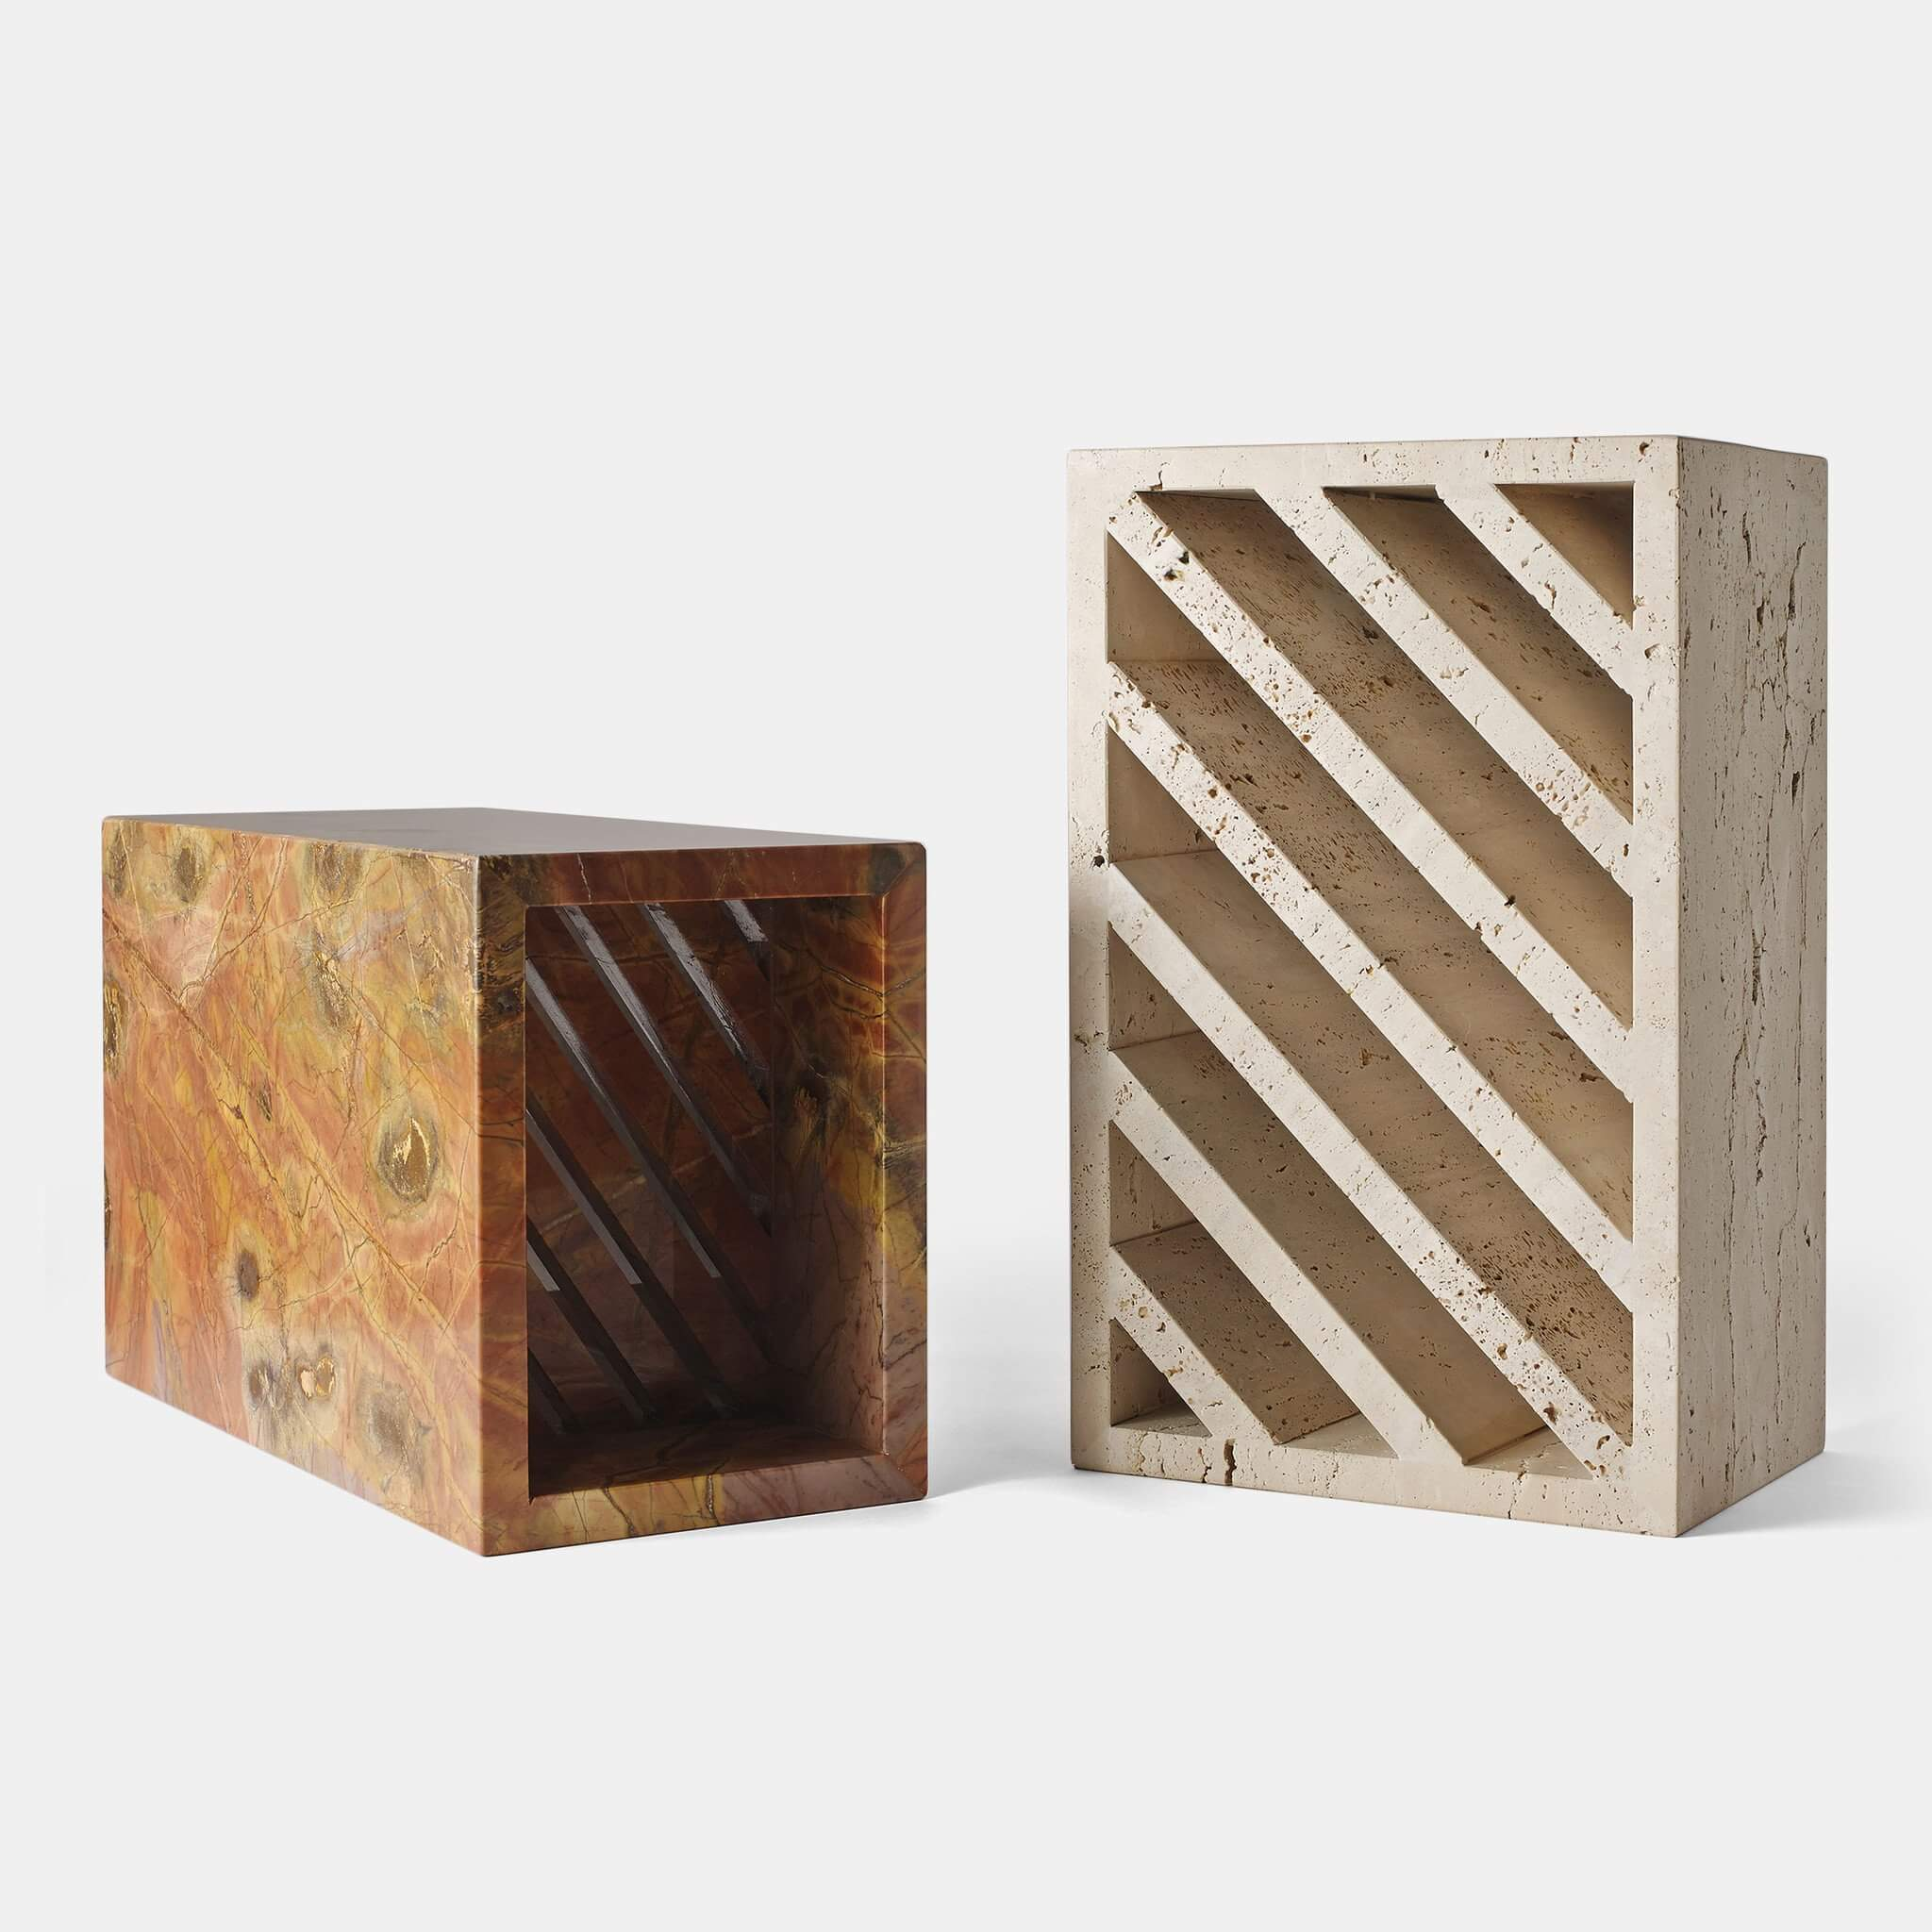 Brick side tables